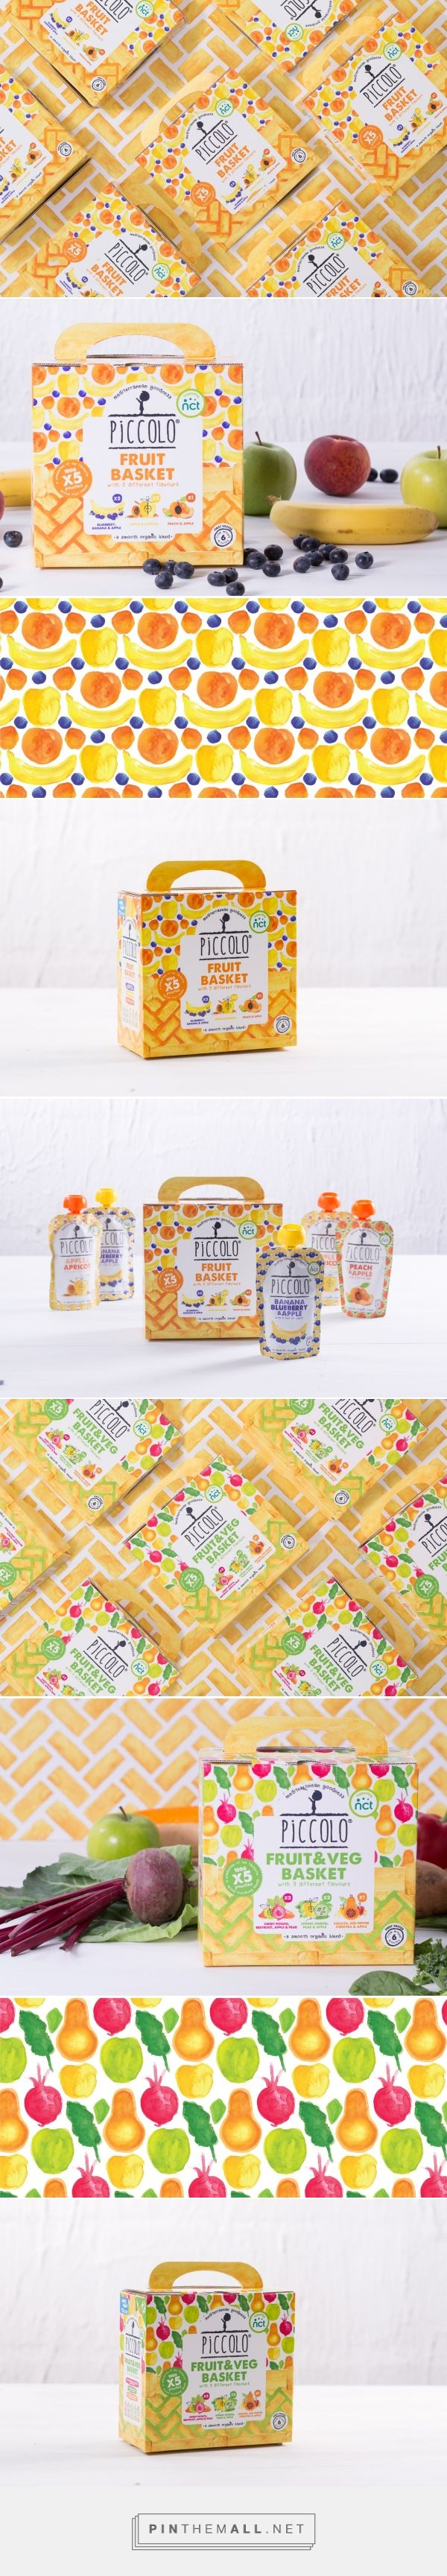 Piccolo Baby Food Baskets - Packaging of the World - Creative Package Design Gallery - http://www.packagingoftheworld.com/2017/05/piccolo-baby-food-baskets.html